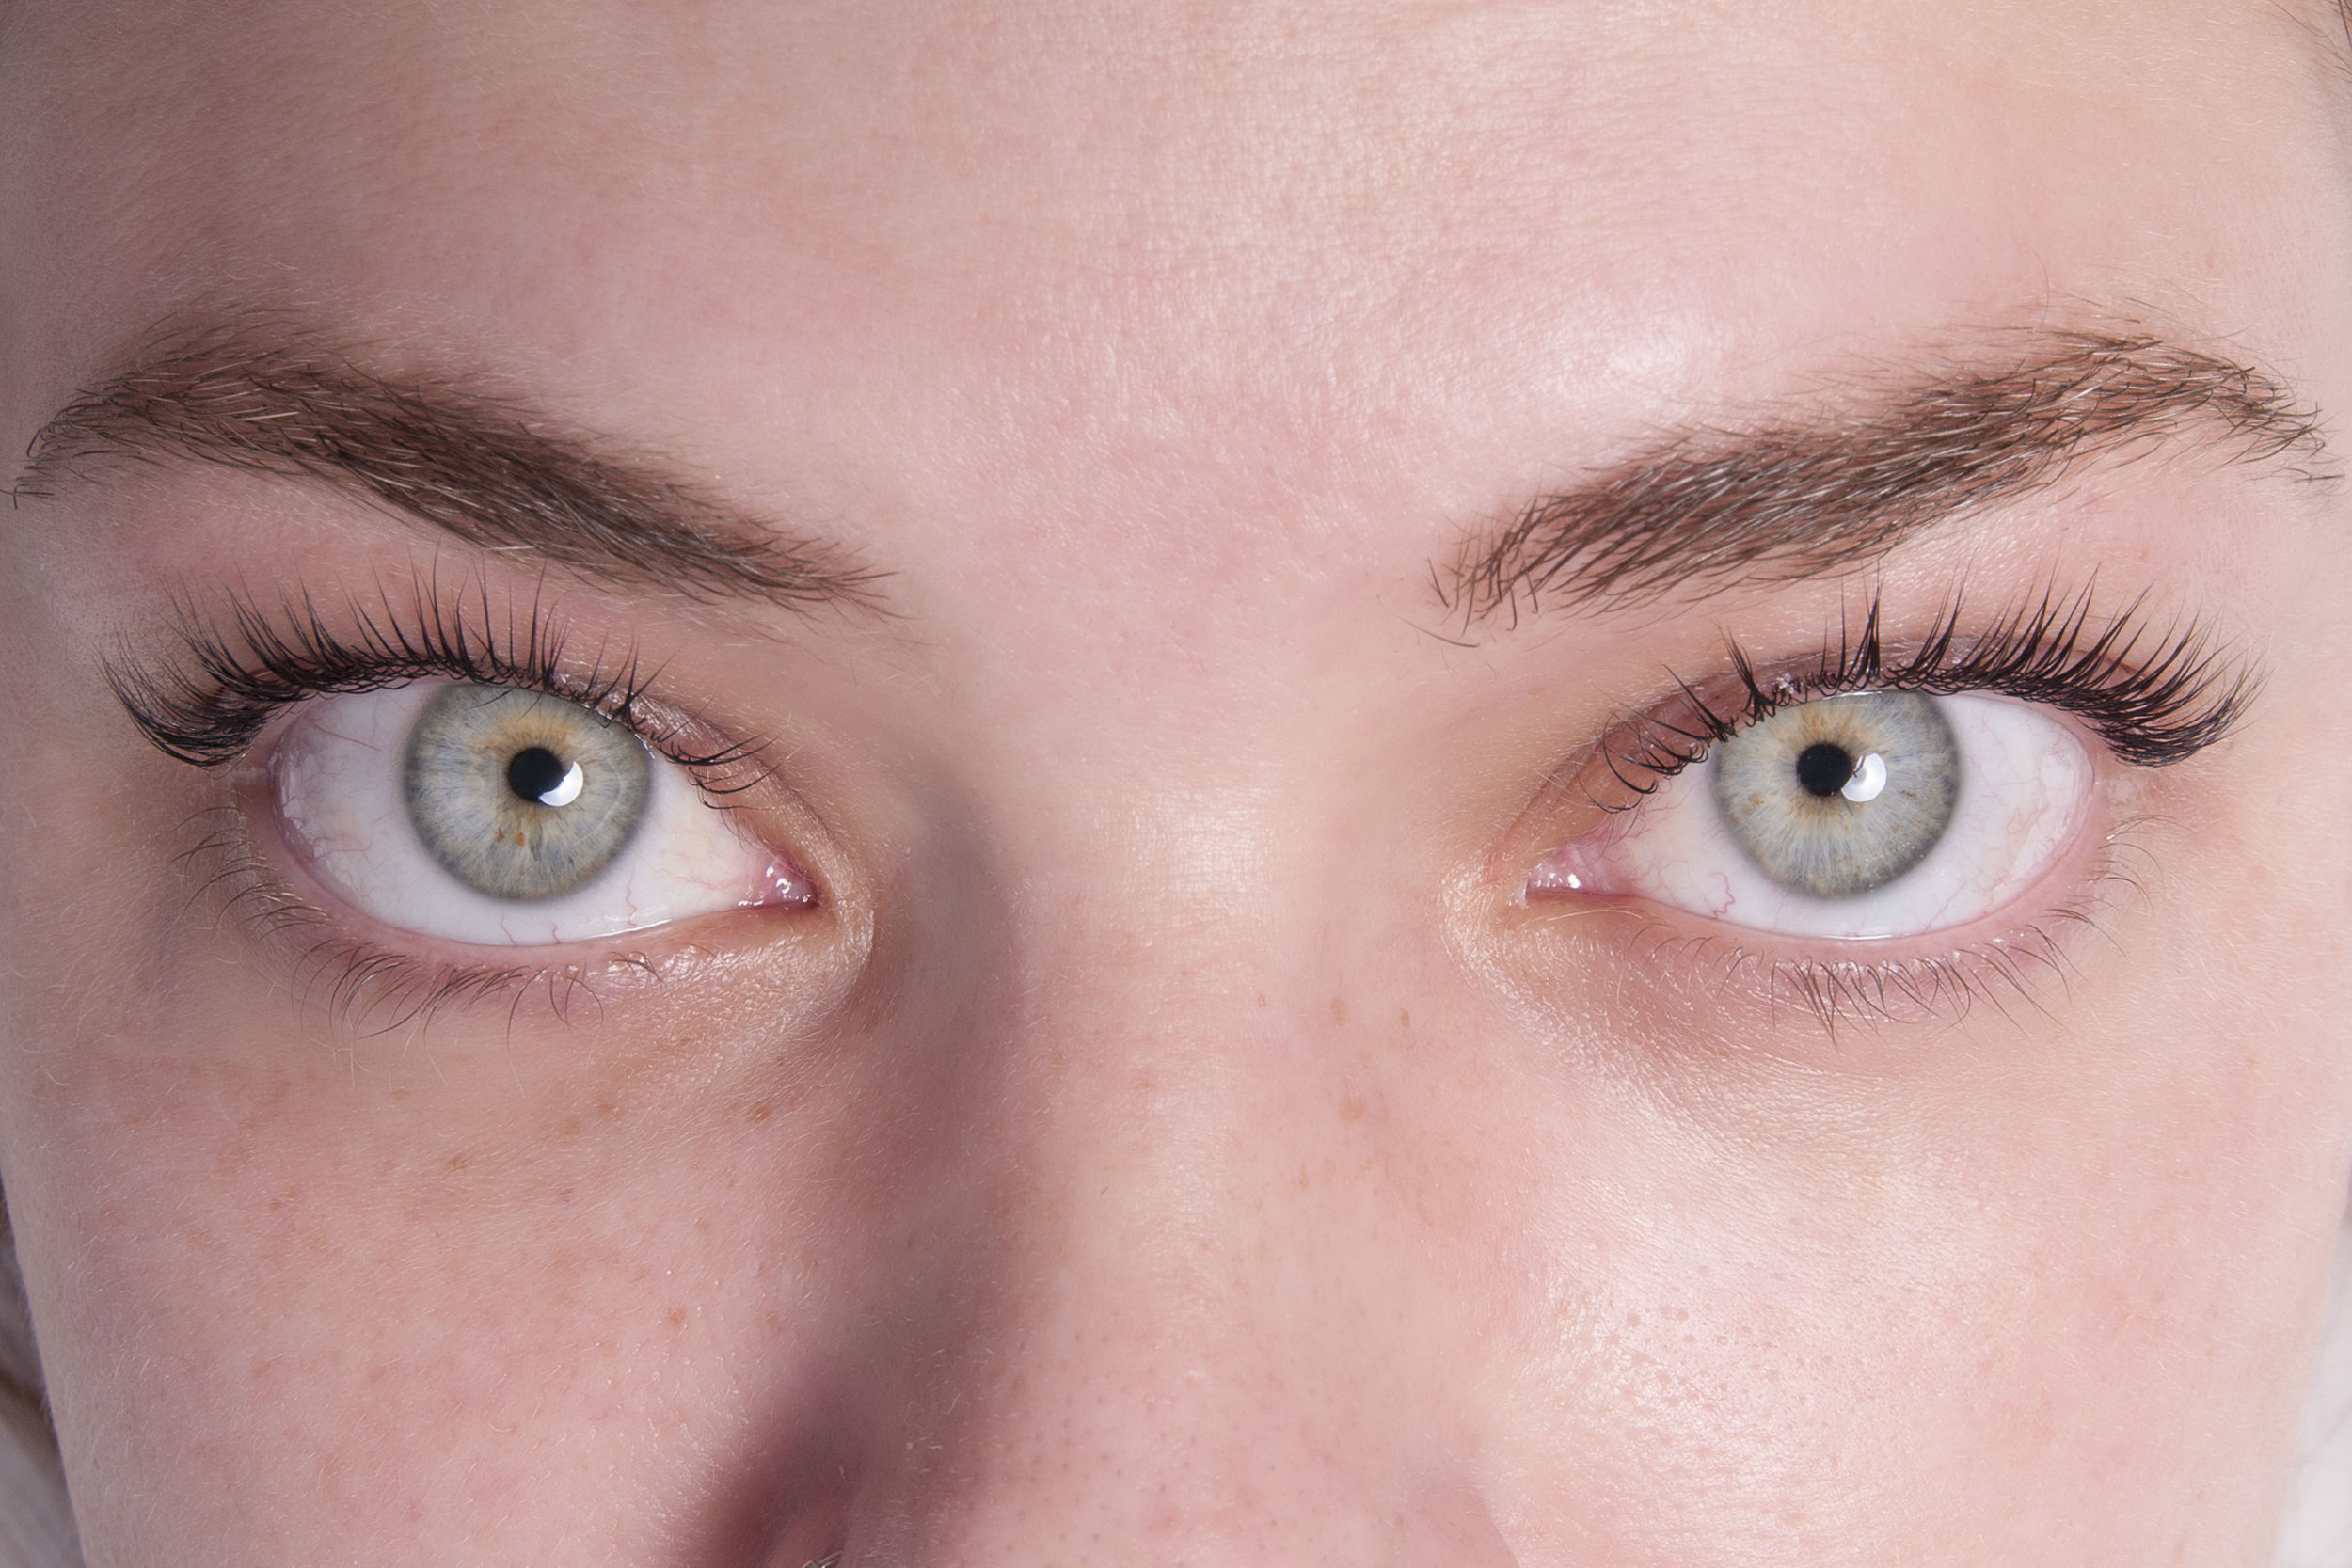 After a Lash Lift with Tinting